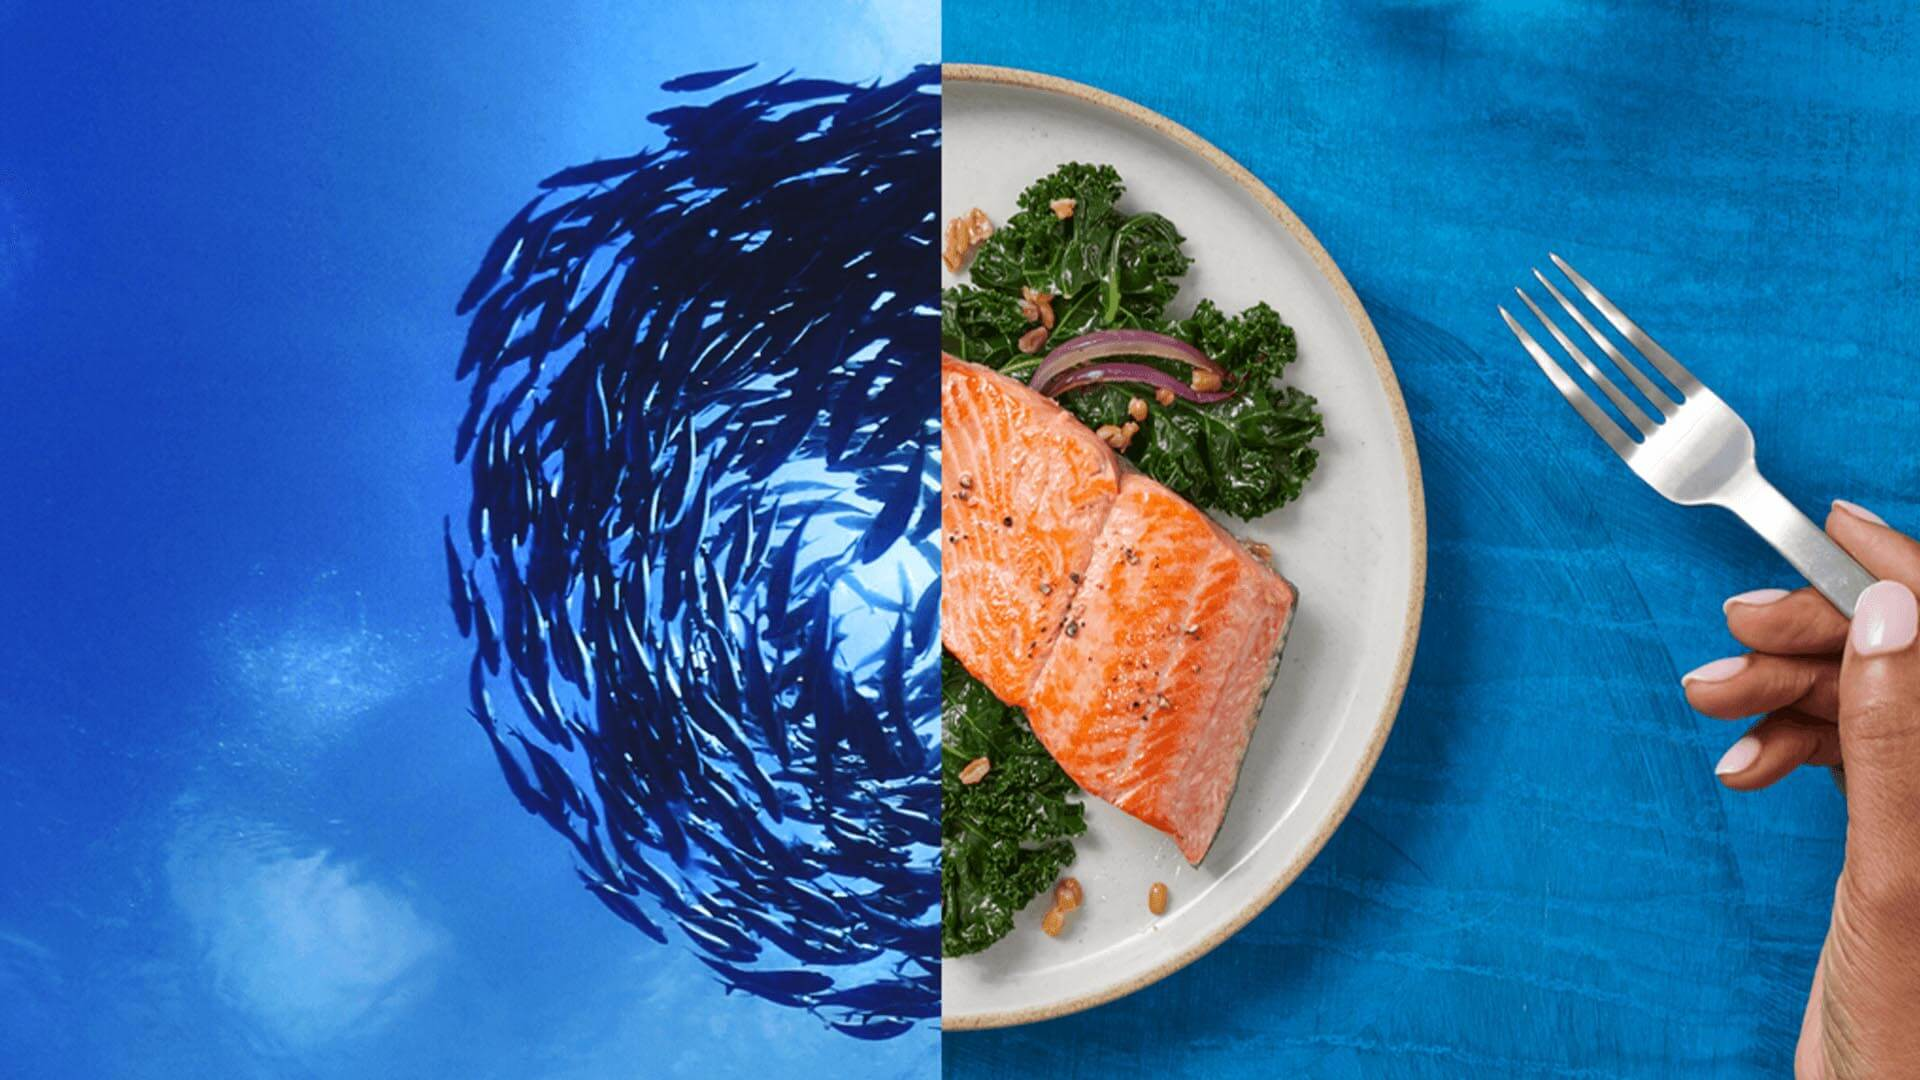 Split screen, left side blue fish swimming, right side plated salmon with fork